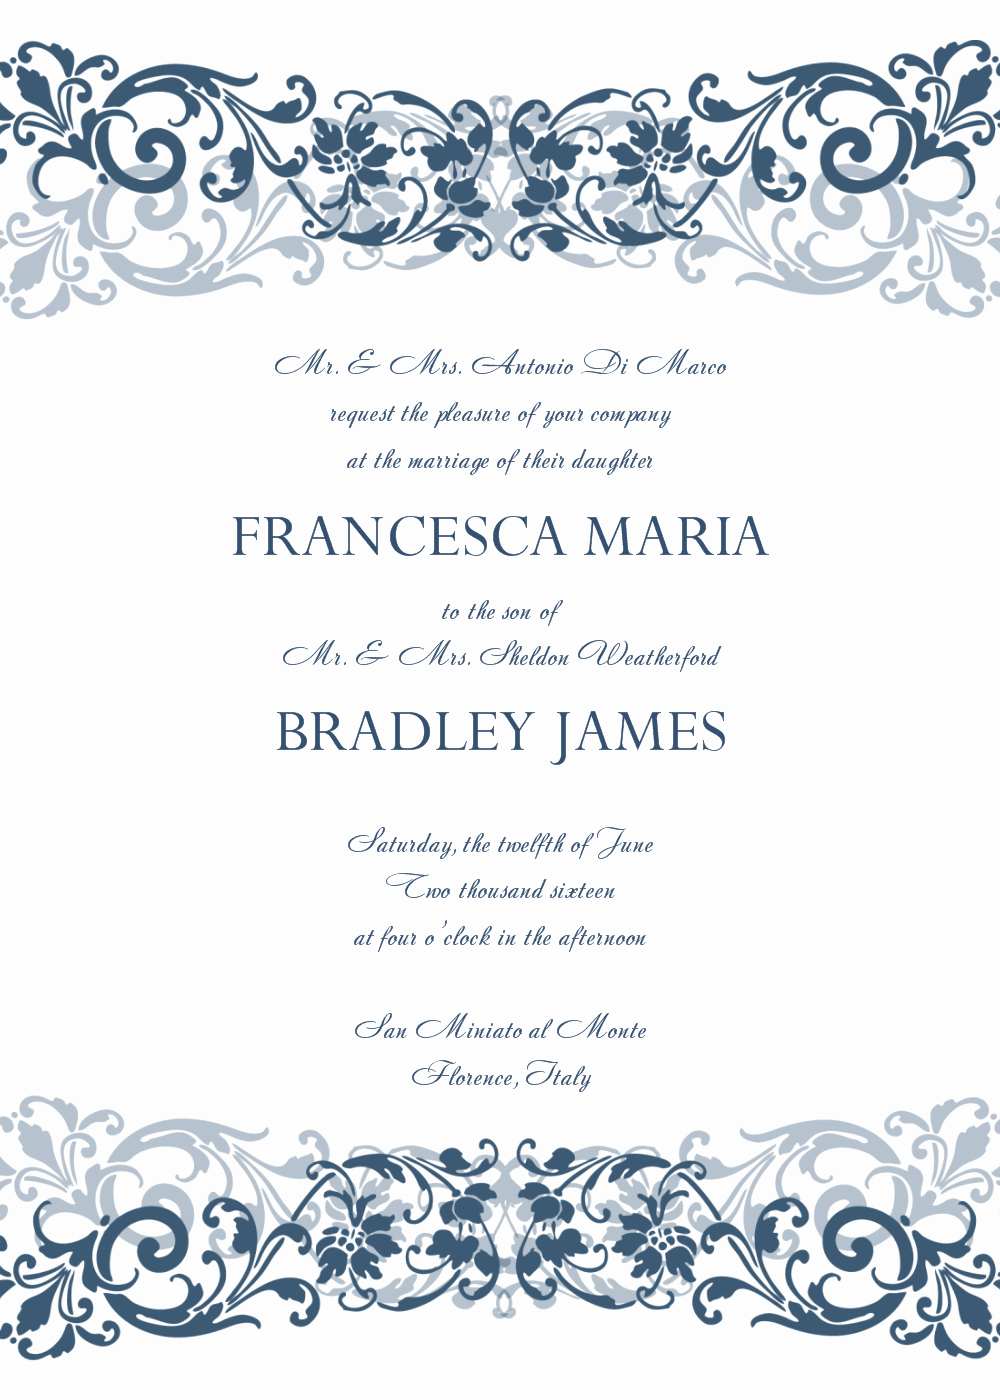 Printable Wedding Invitation Template Fresh 8 Free Wedding Invitation Templates Excel Pdf formats